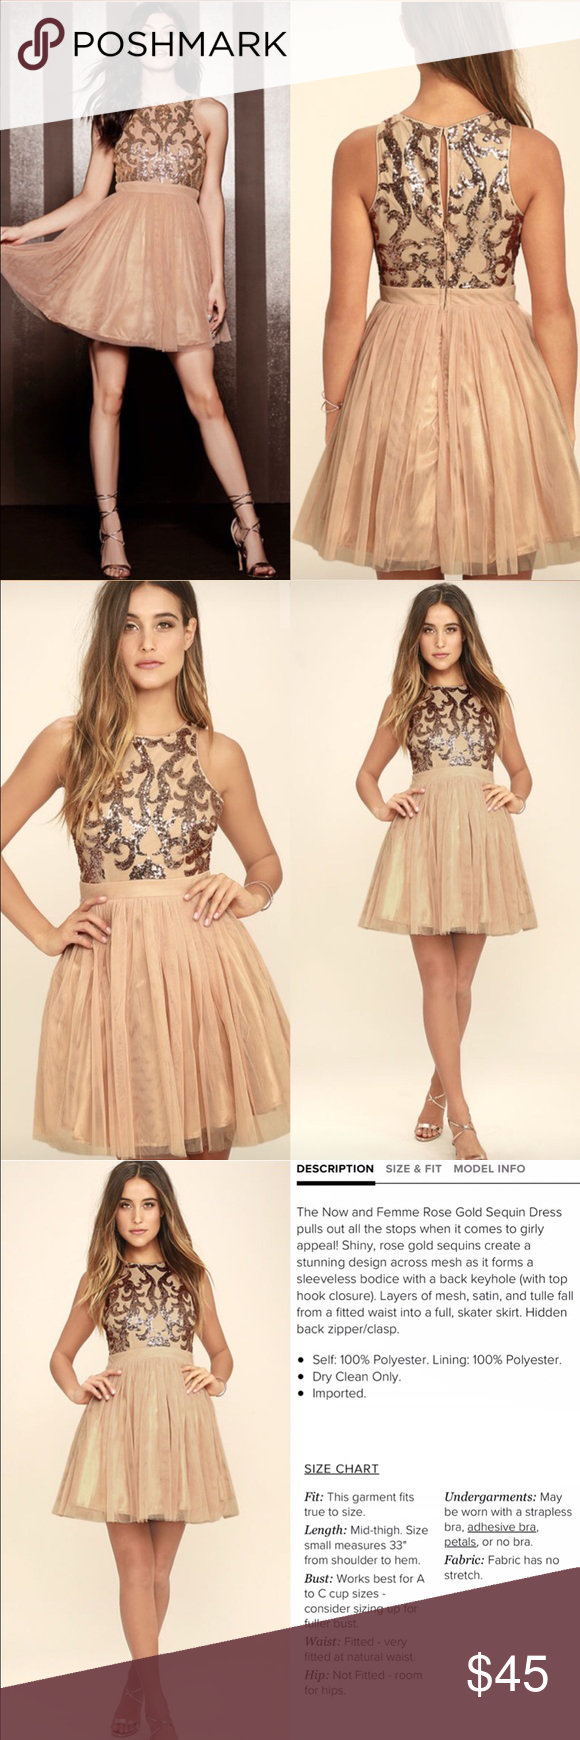 1ae5c3d1 Rose Gold Sequin Dress New with tags! Stunning dress with layers of mesh,  satin, tulle form a fitted waist into a full skater skirt! Dresses